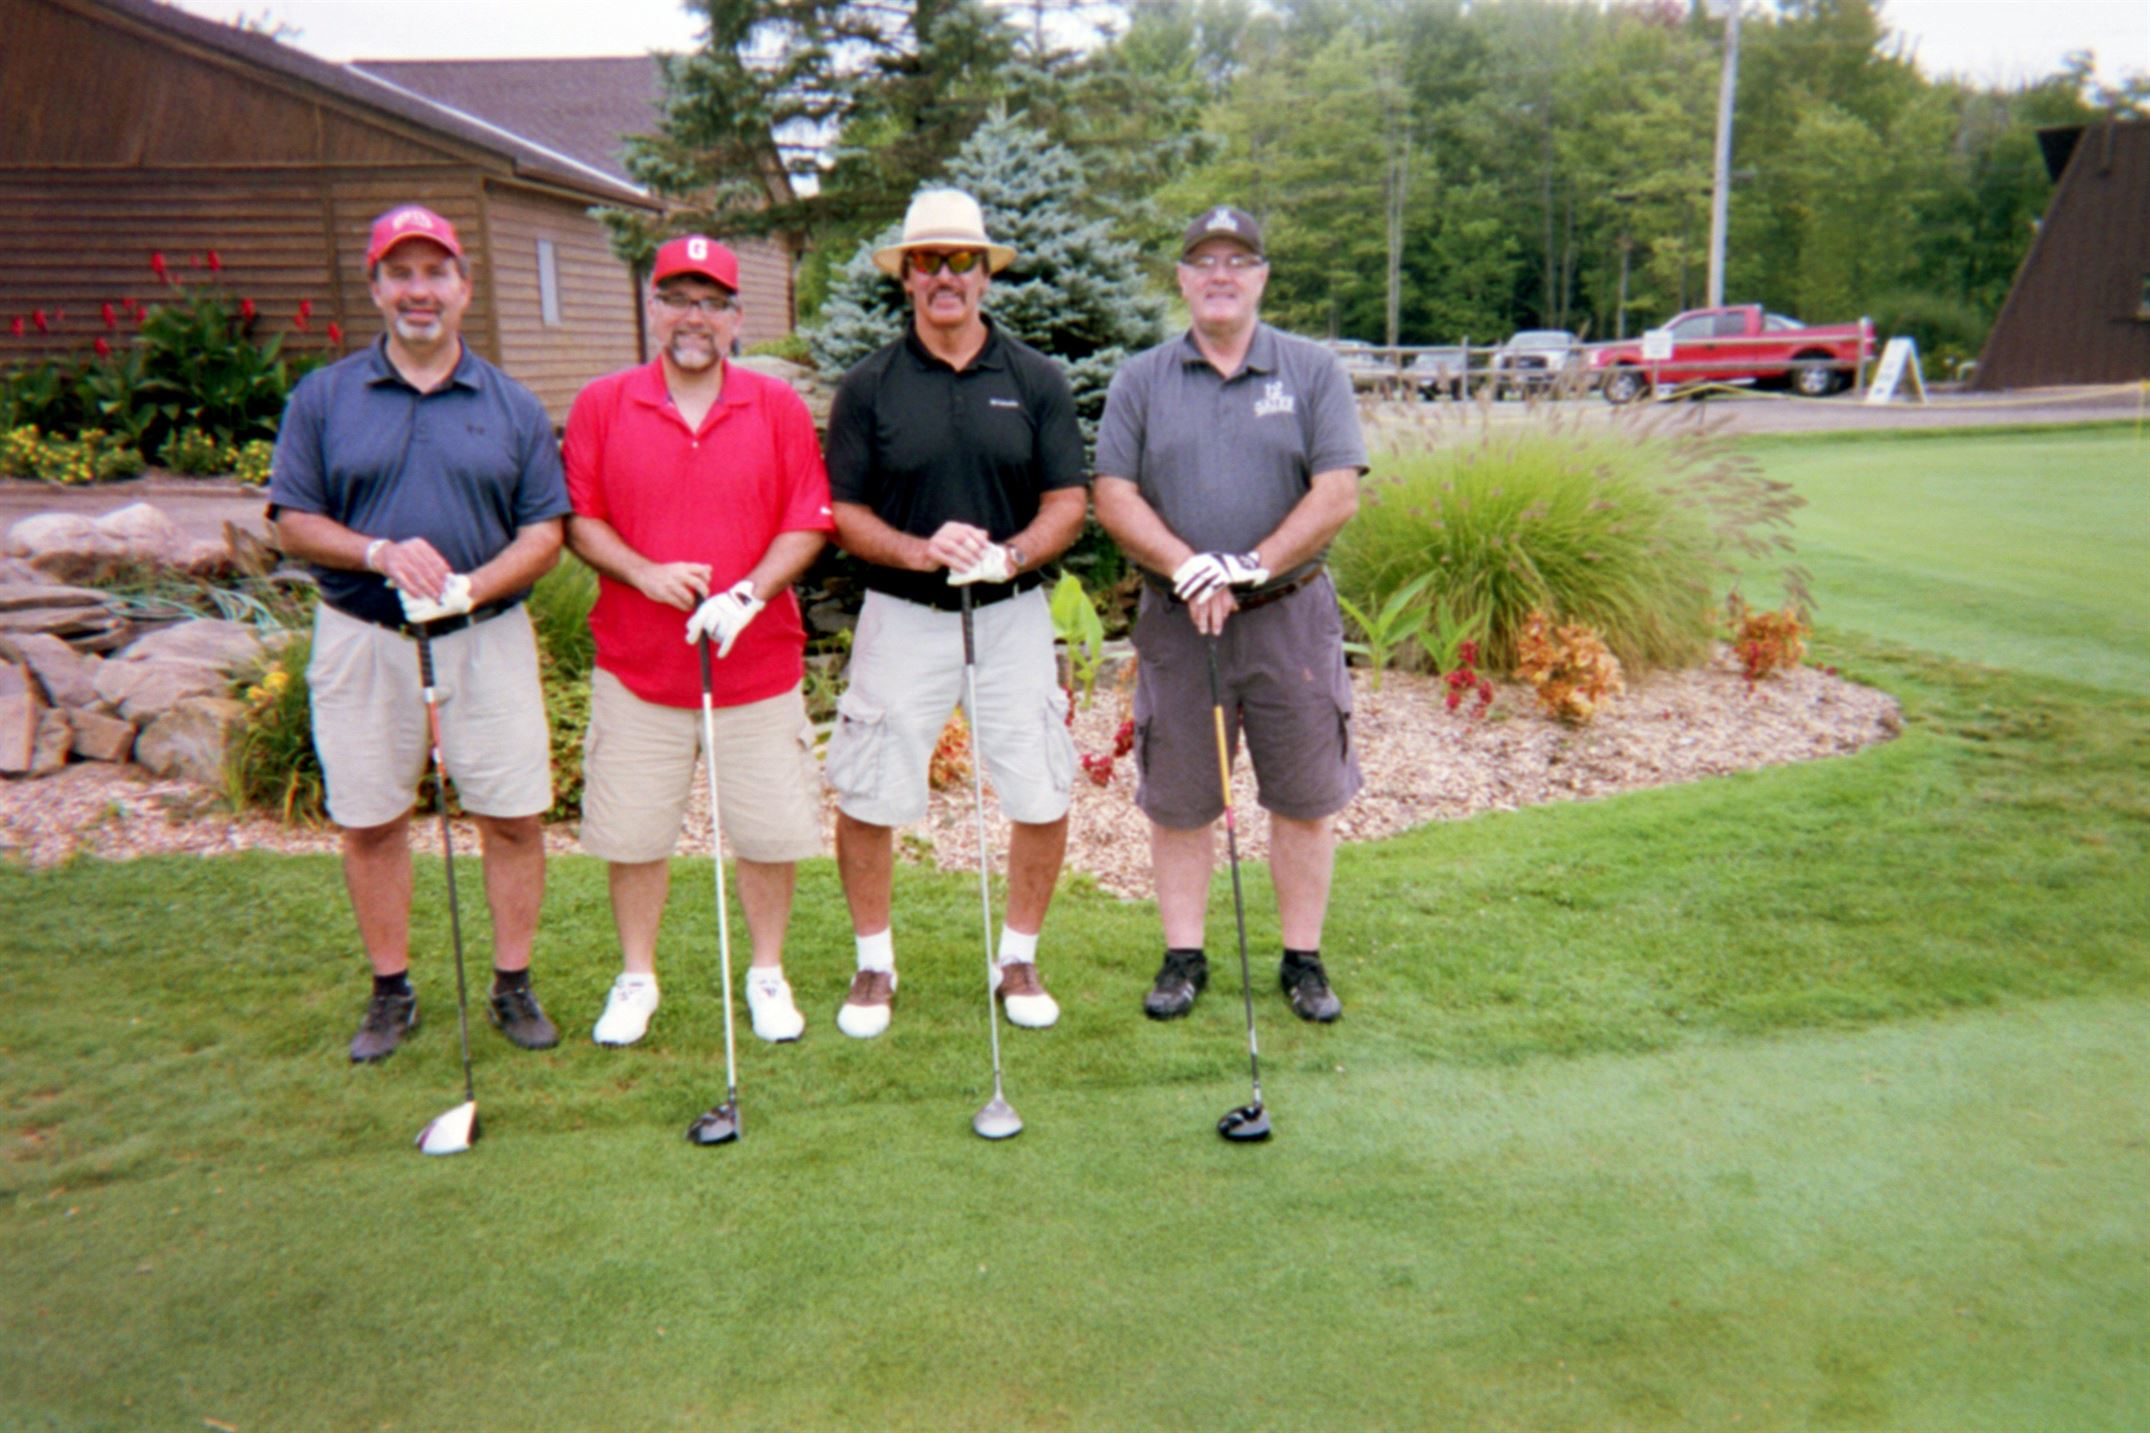 Mike Hassett, Tony Tersigni, Tony Hassett, Randy Hackathorne